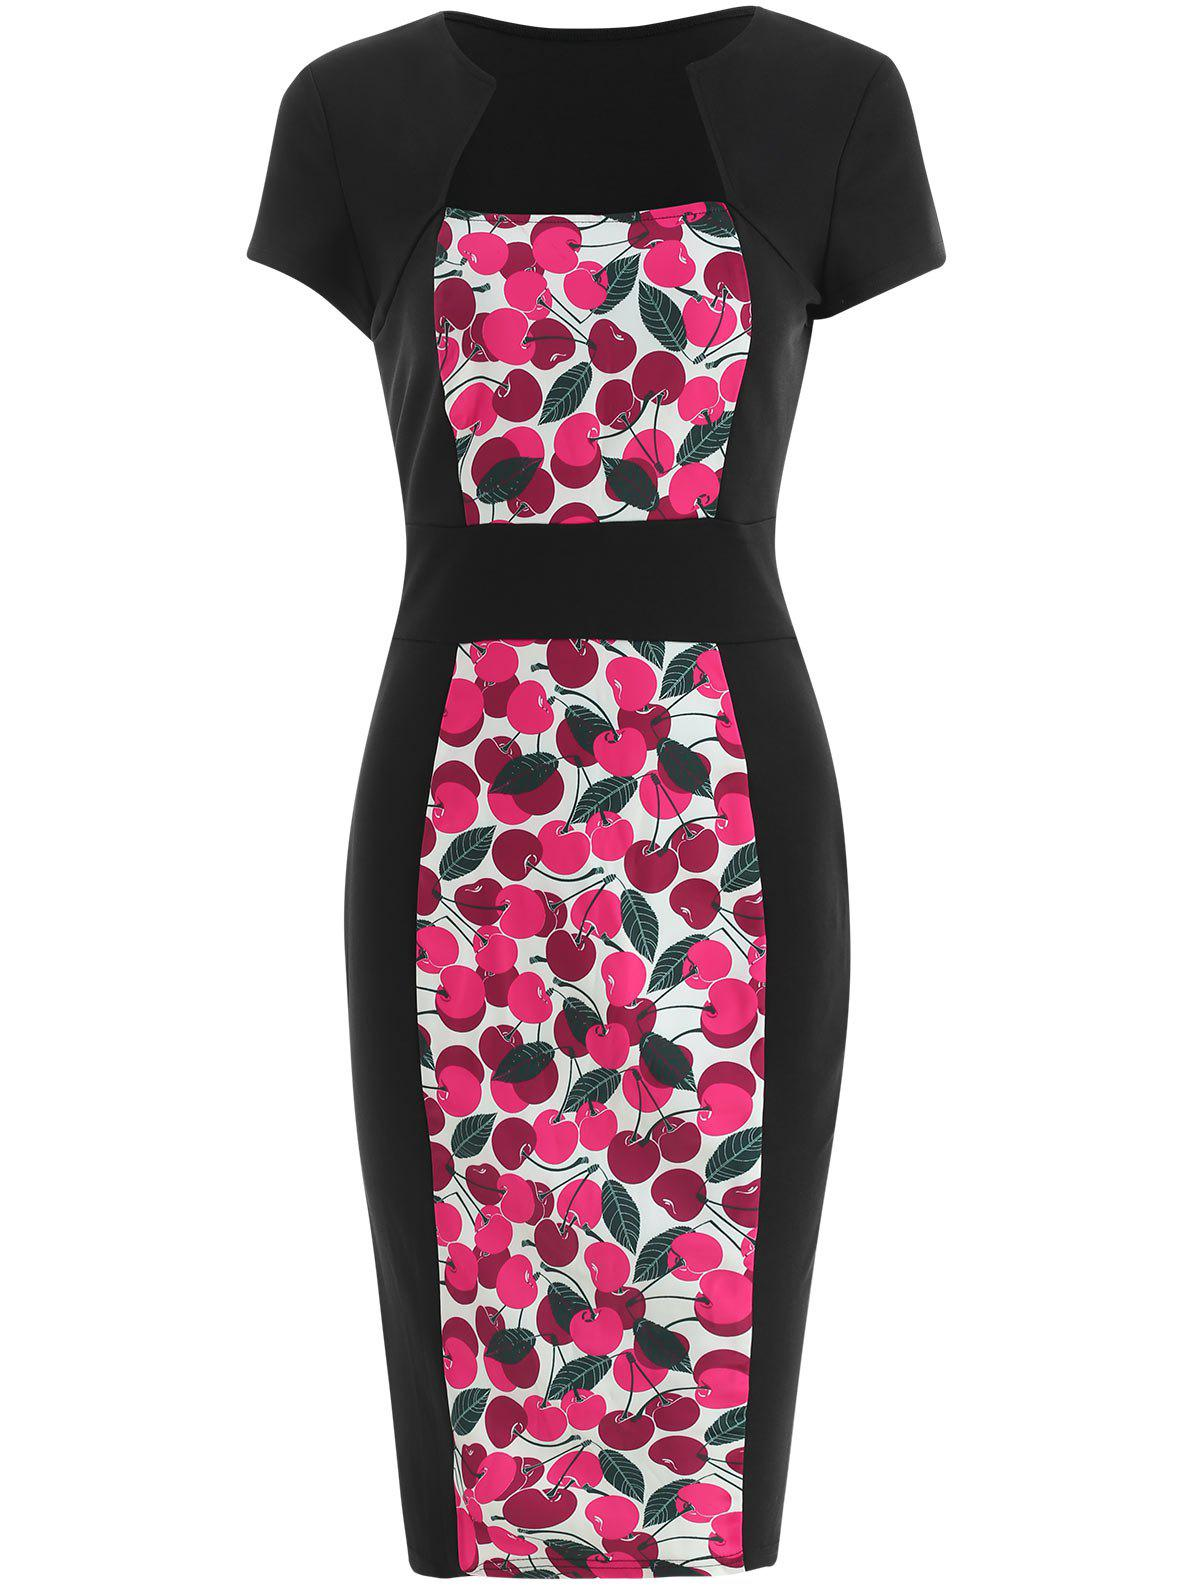 Shop Cherry Print Cap Sleeve Bodycon Dress